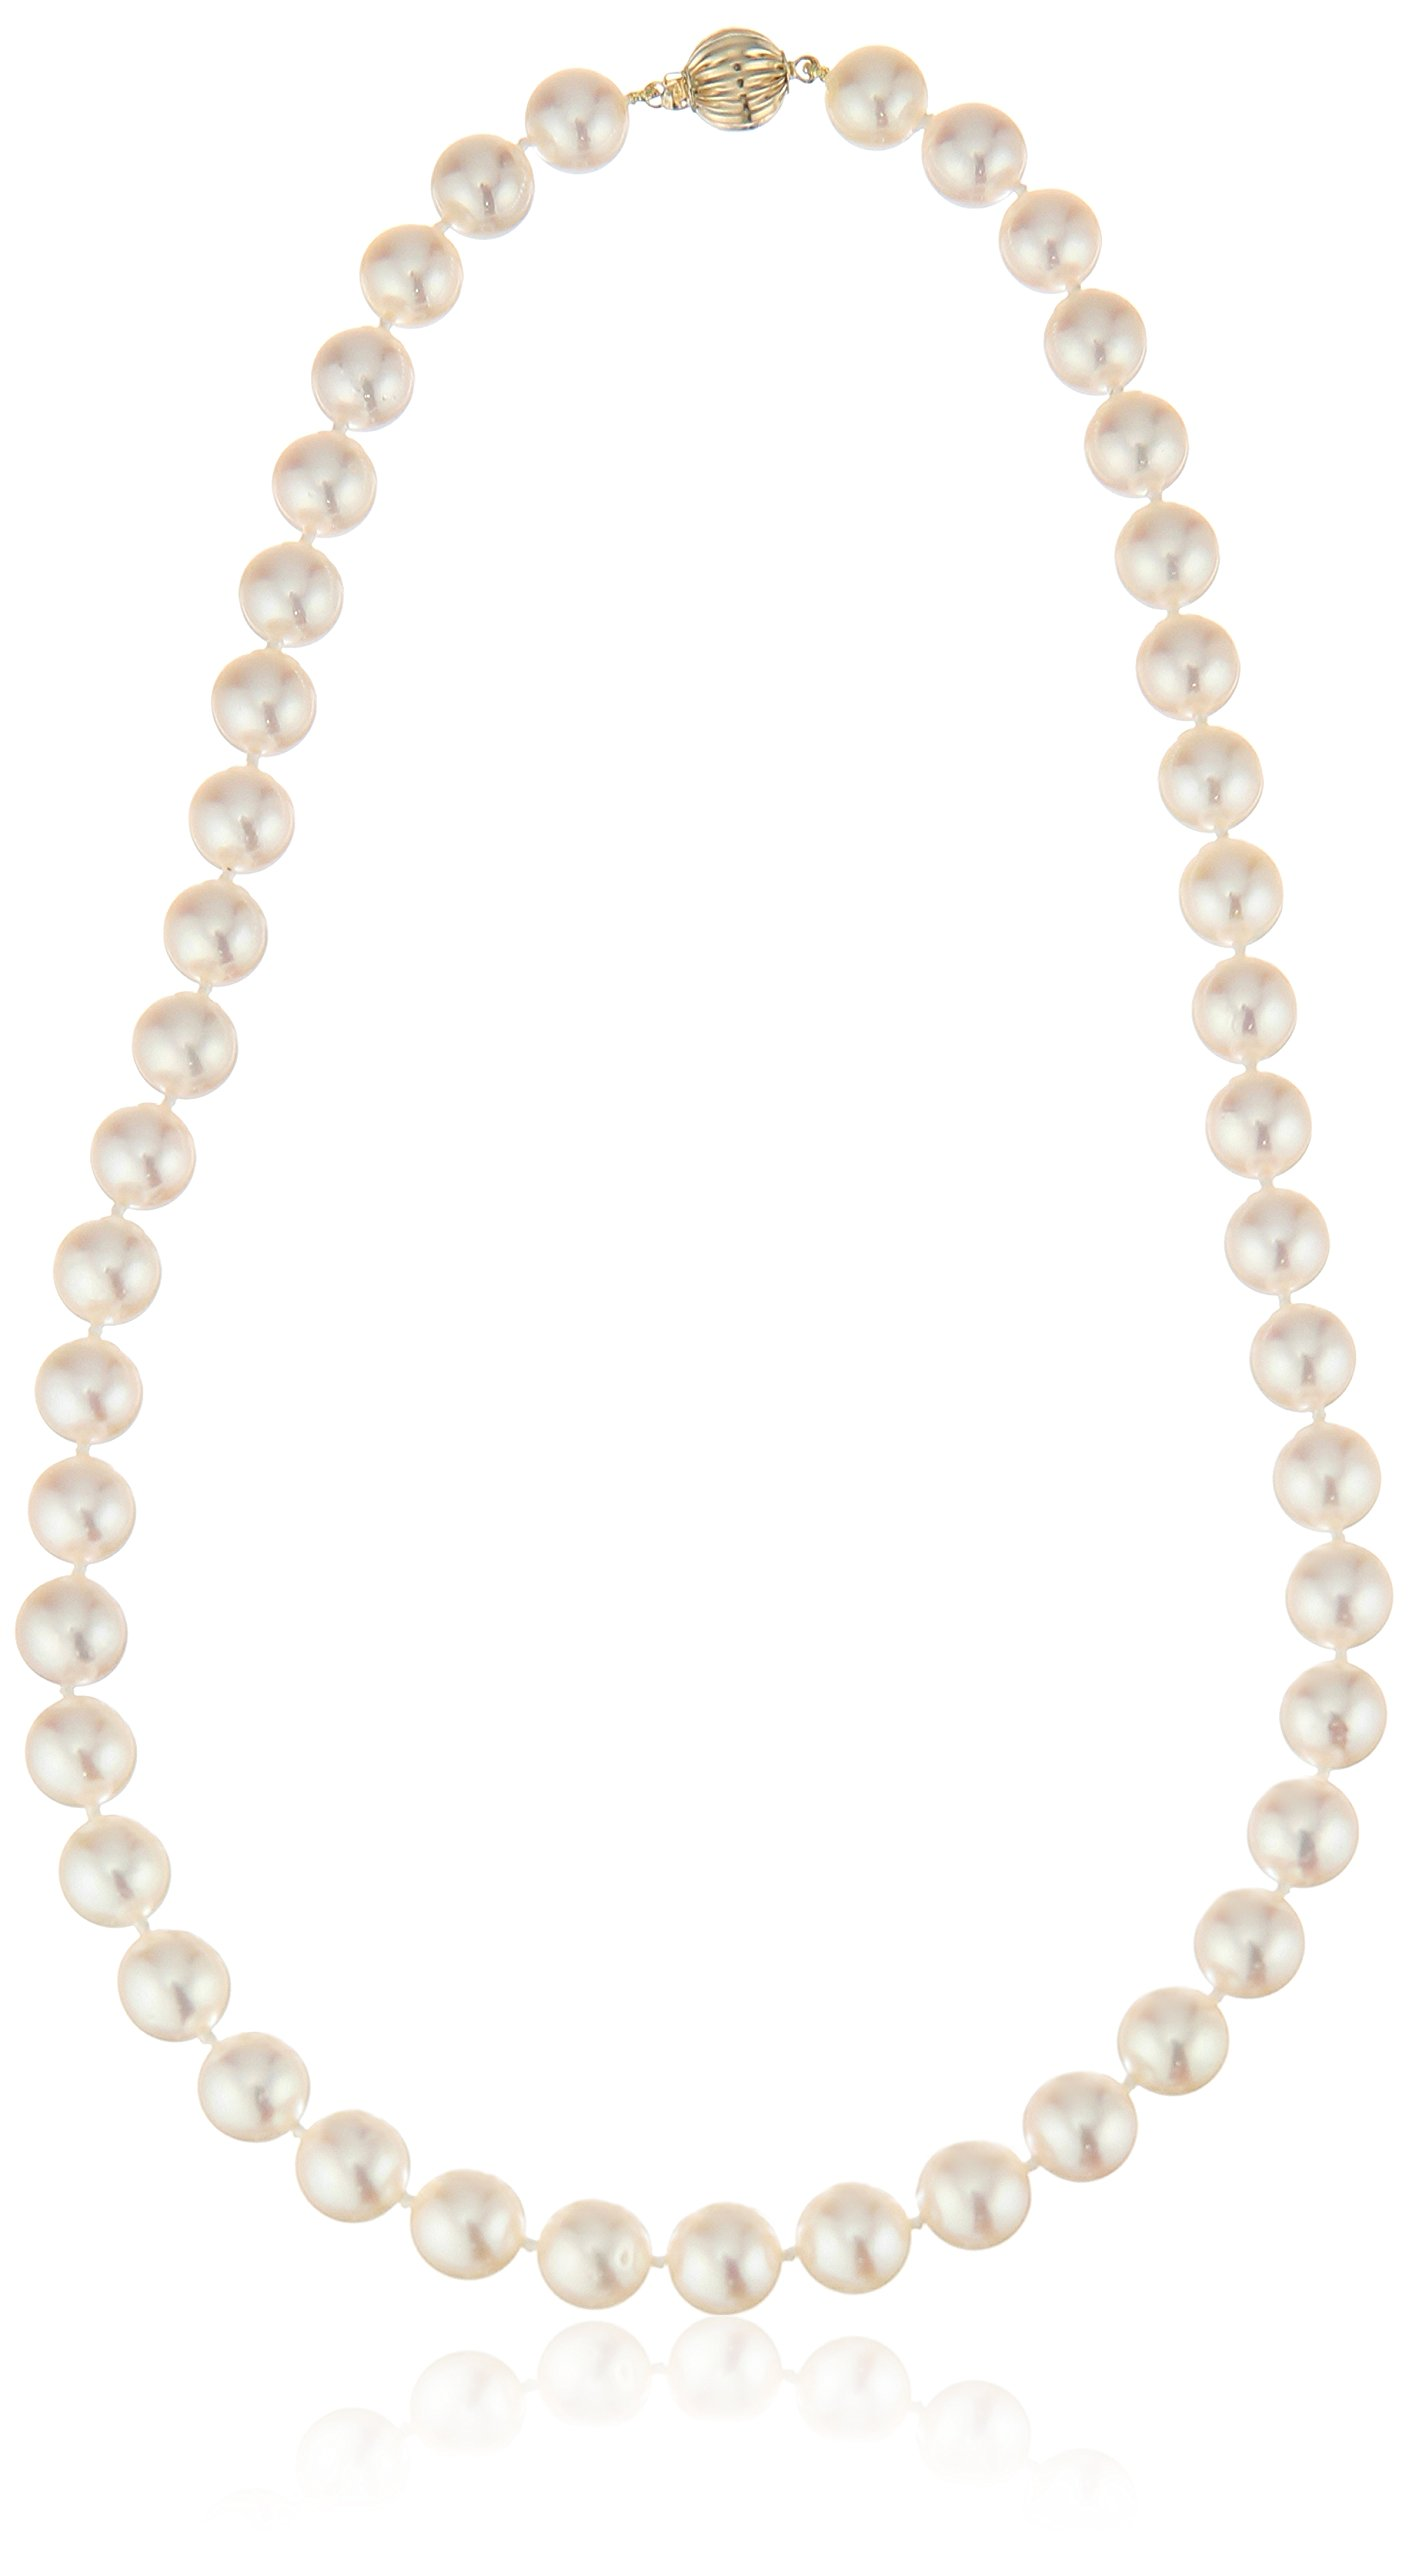 14k Yellow Gold 9-9.5mm AAAA Handpicked White Japanese Akoya Cultured Pearl Strand, 18''